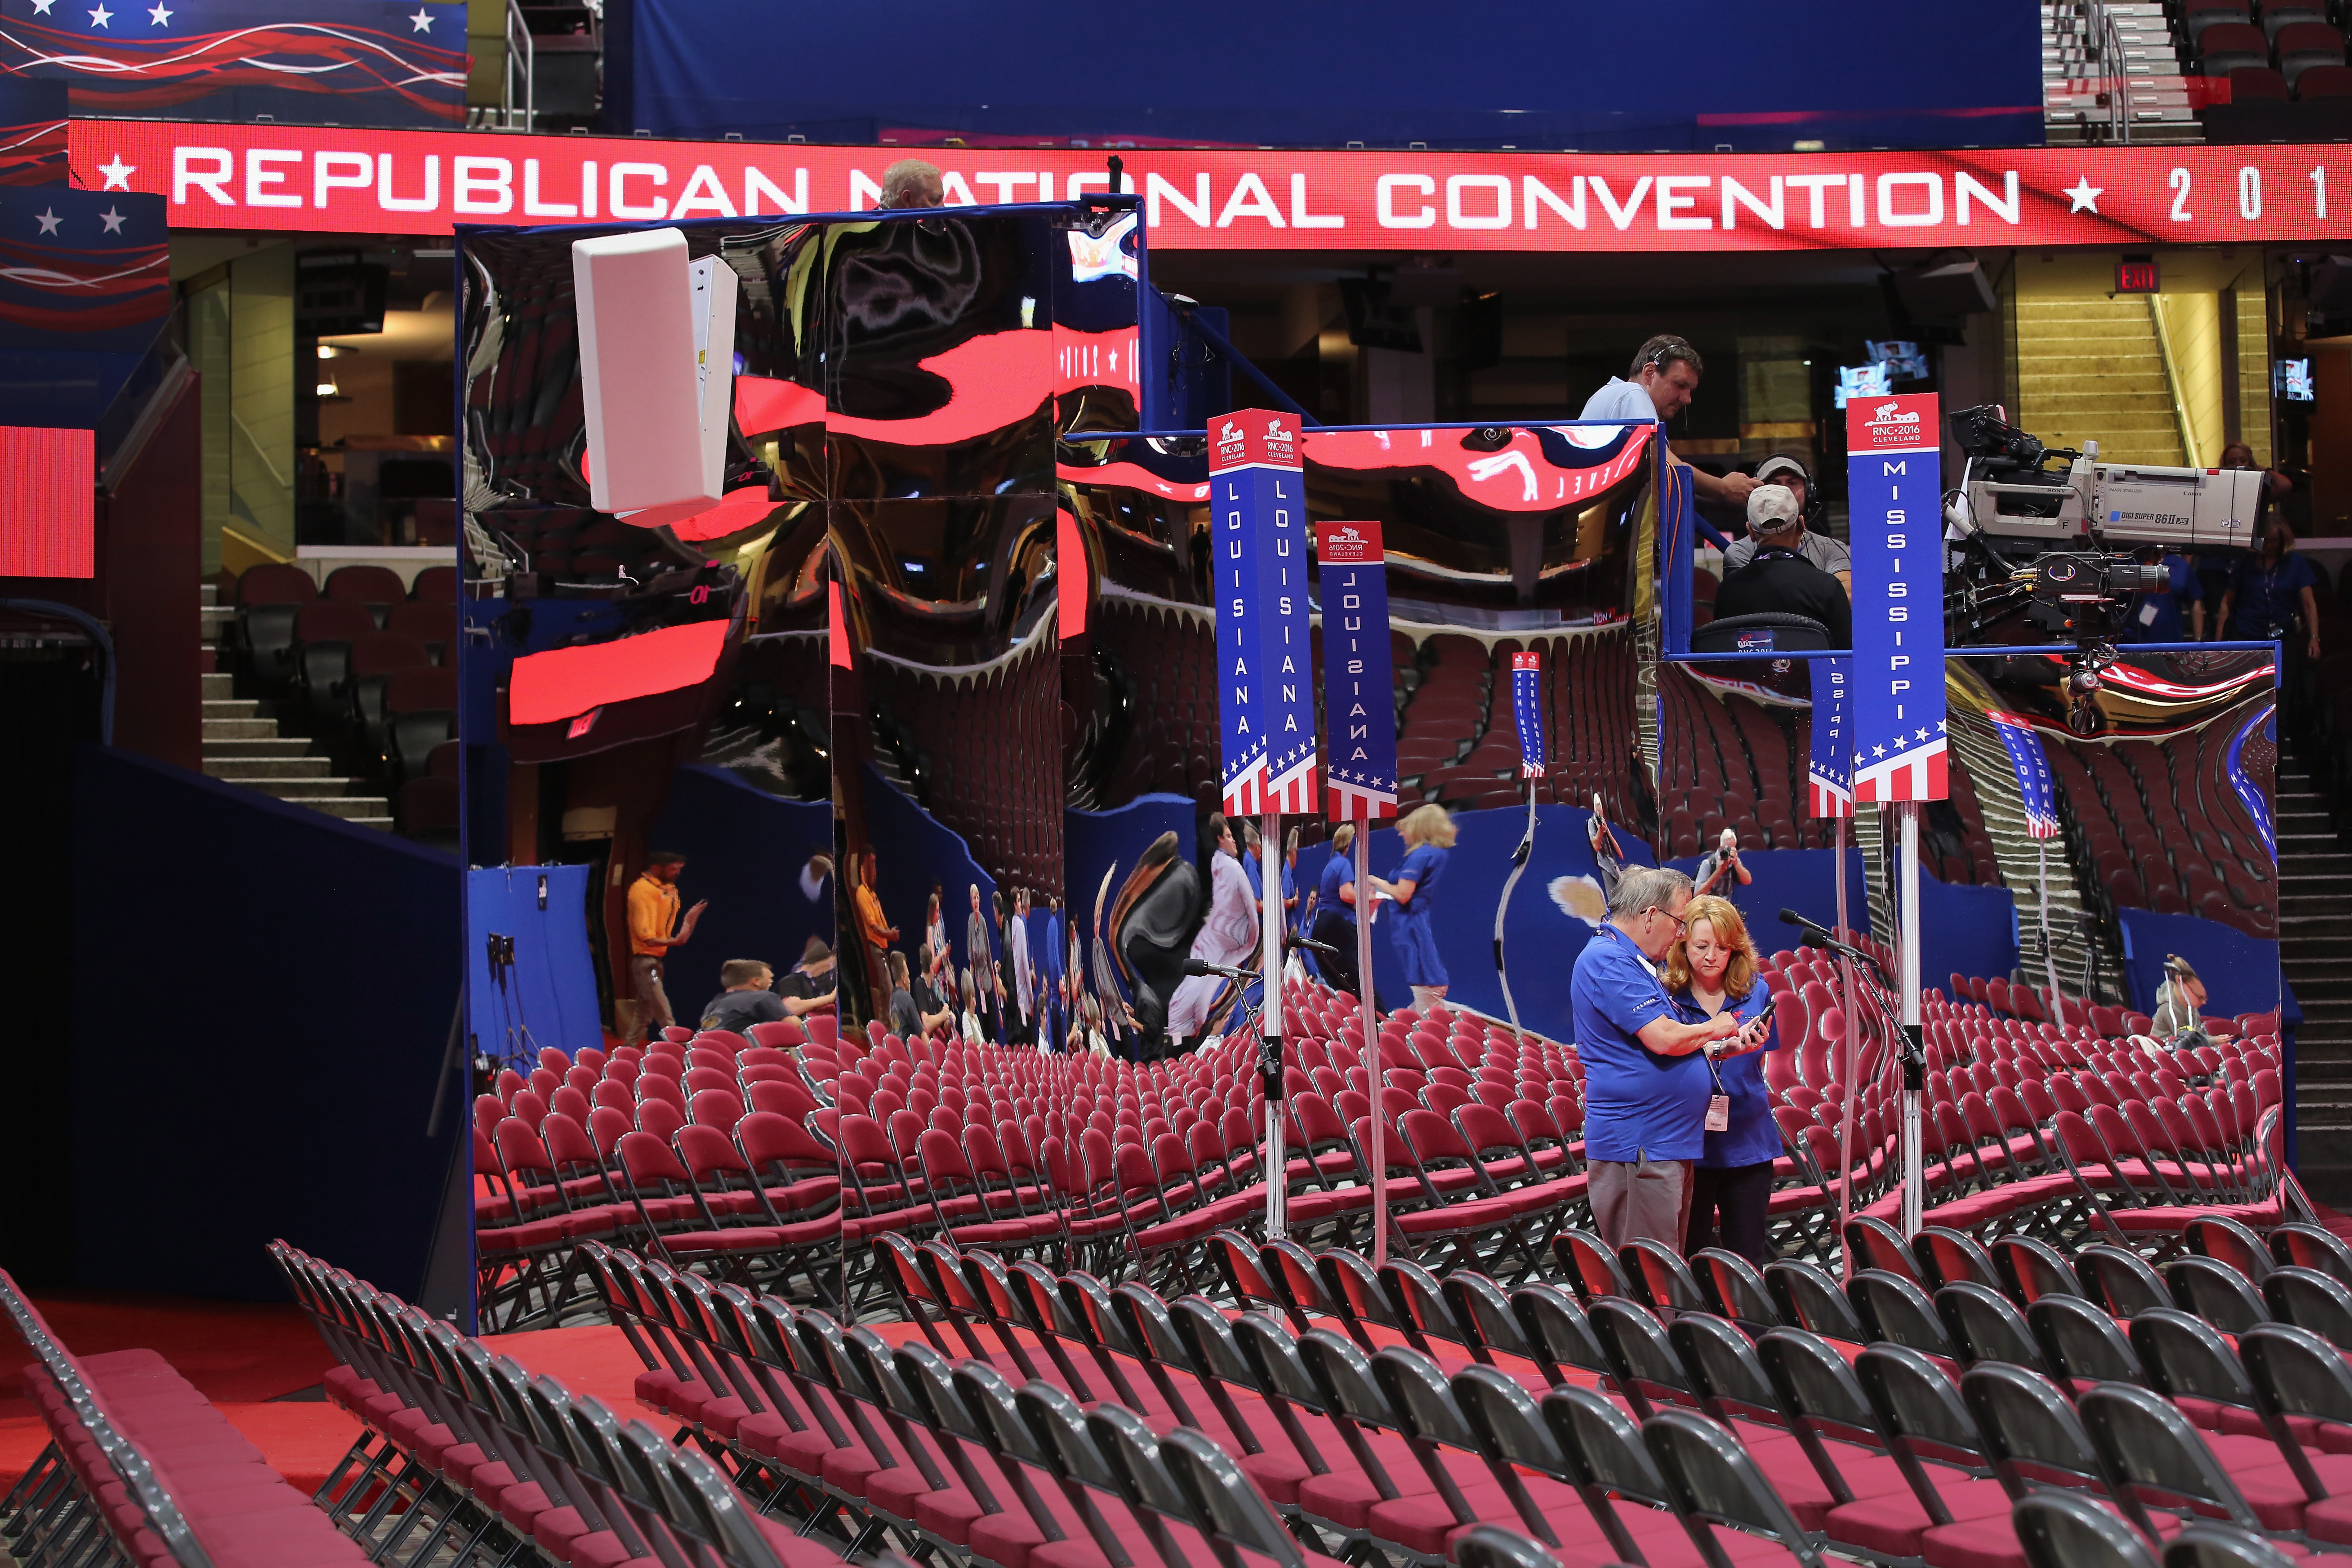 vent workers compare photos on the floor of the Quicken Loans Arena ahead of the Republican National Convention on July 16, 2016 in Cleveland, Ohio.